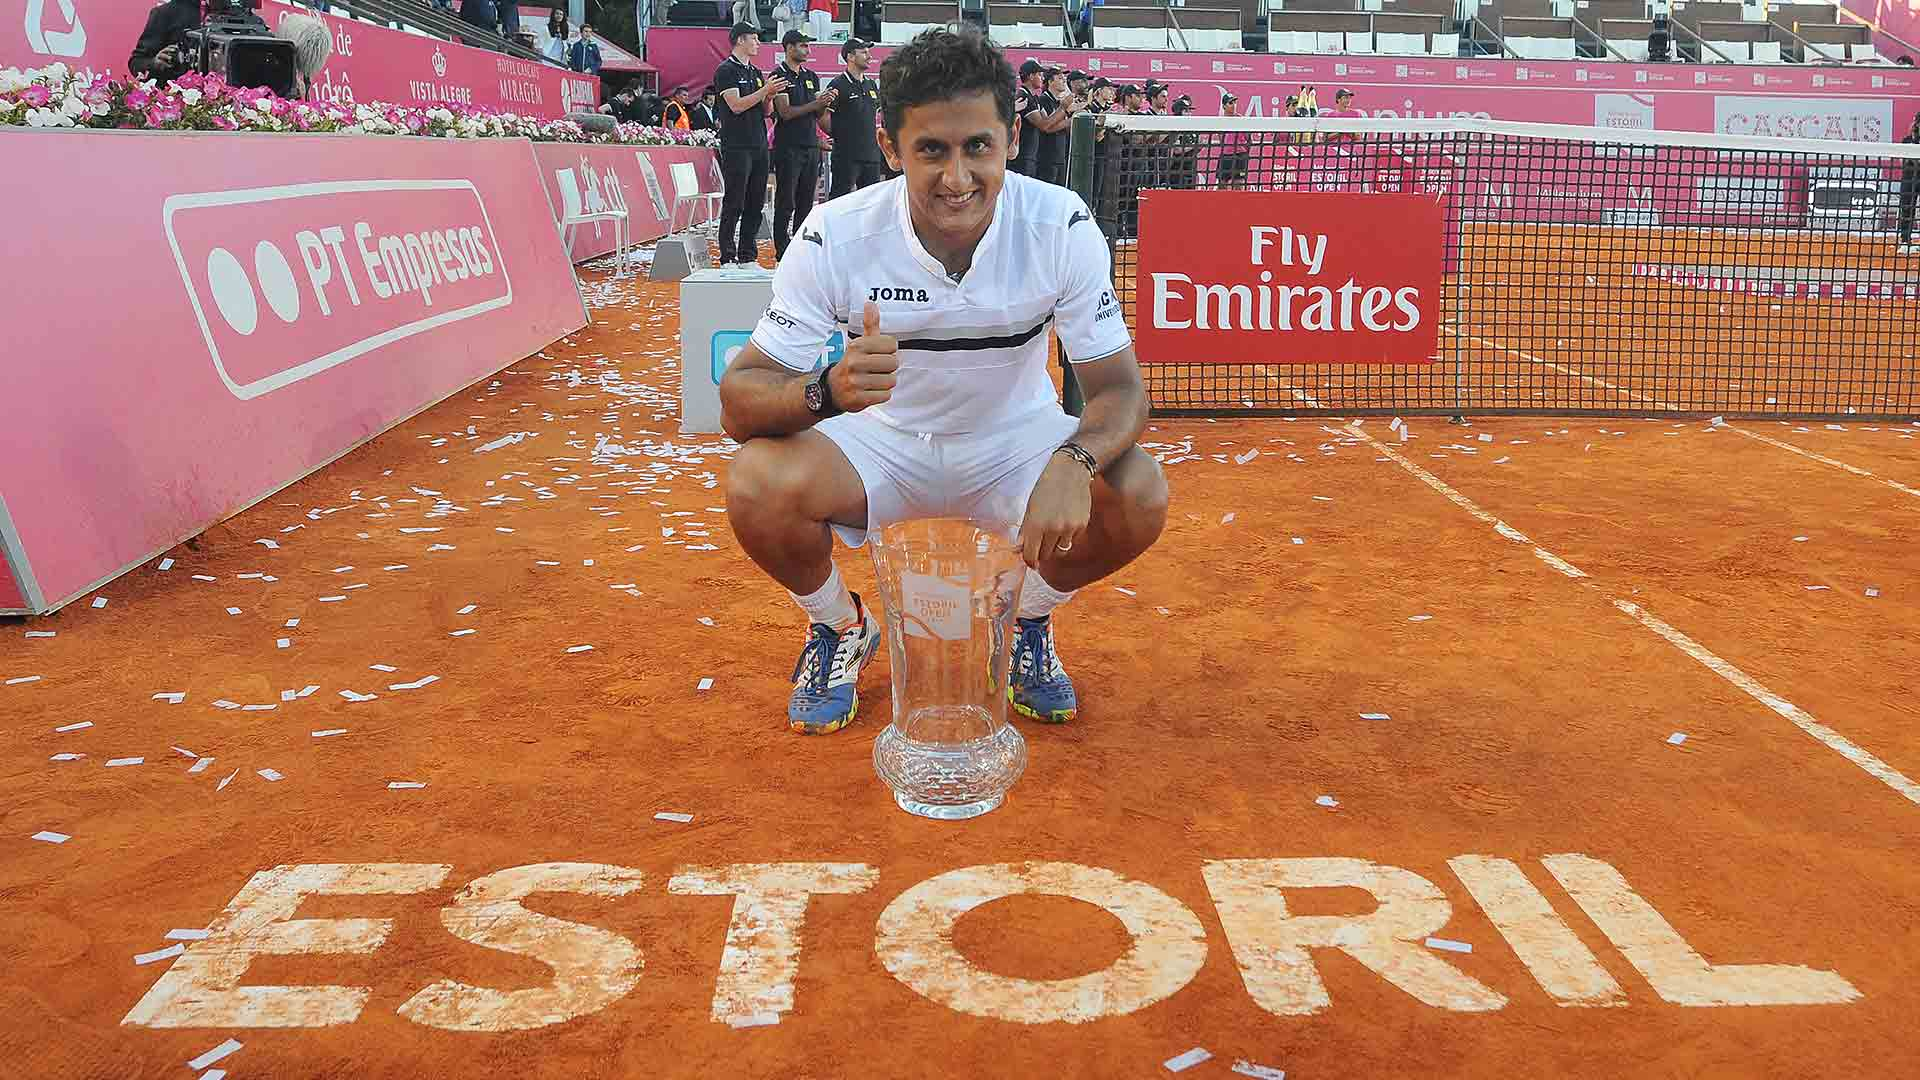 Nicolas Almagro wins his first ATP World Tour title since 2012 in Estoril.